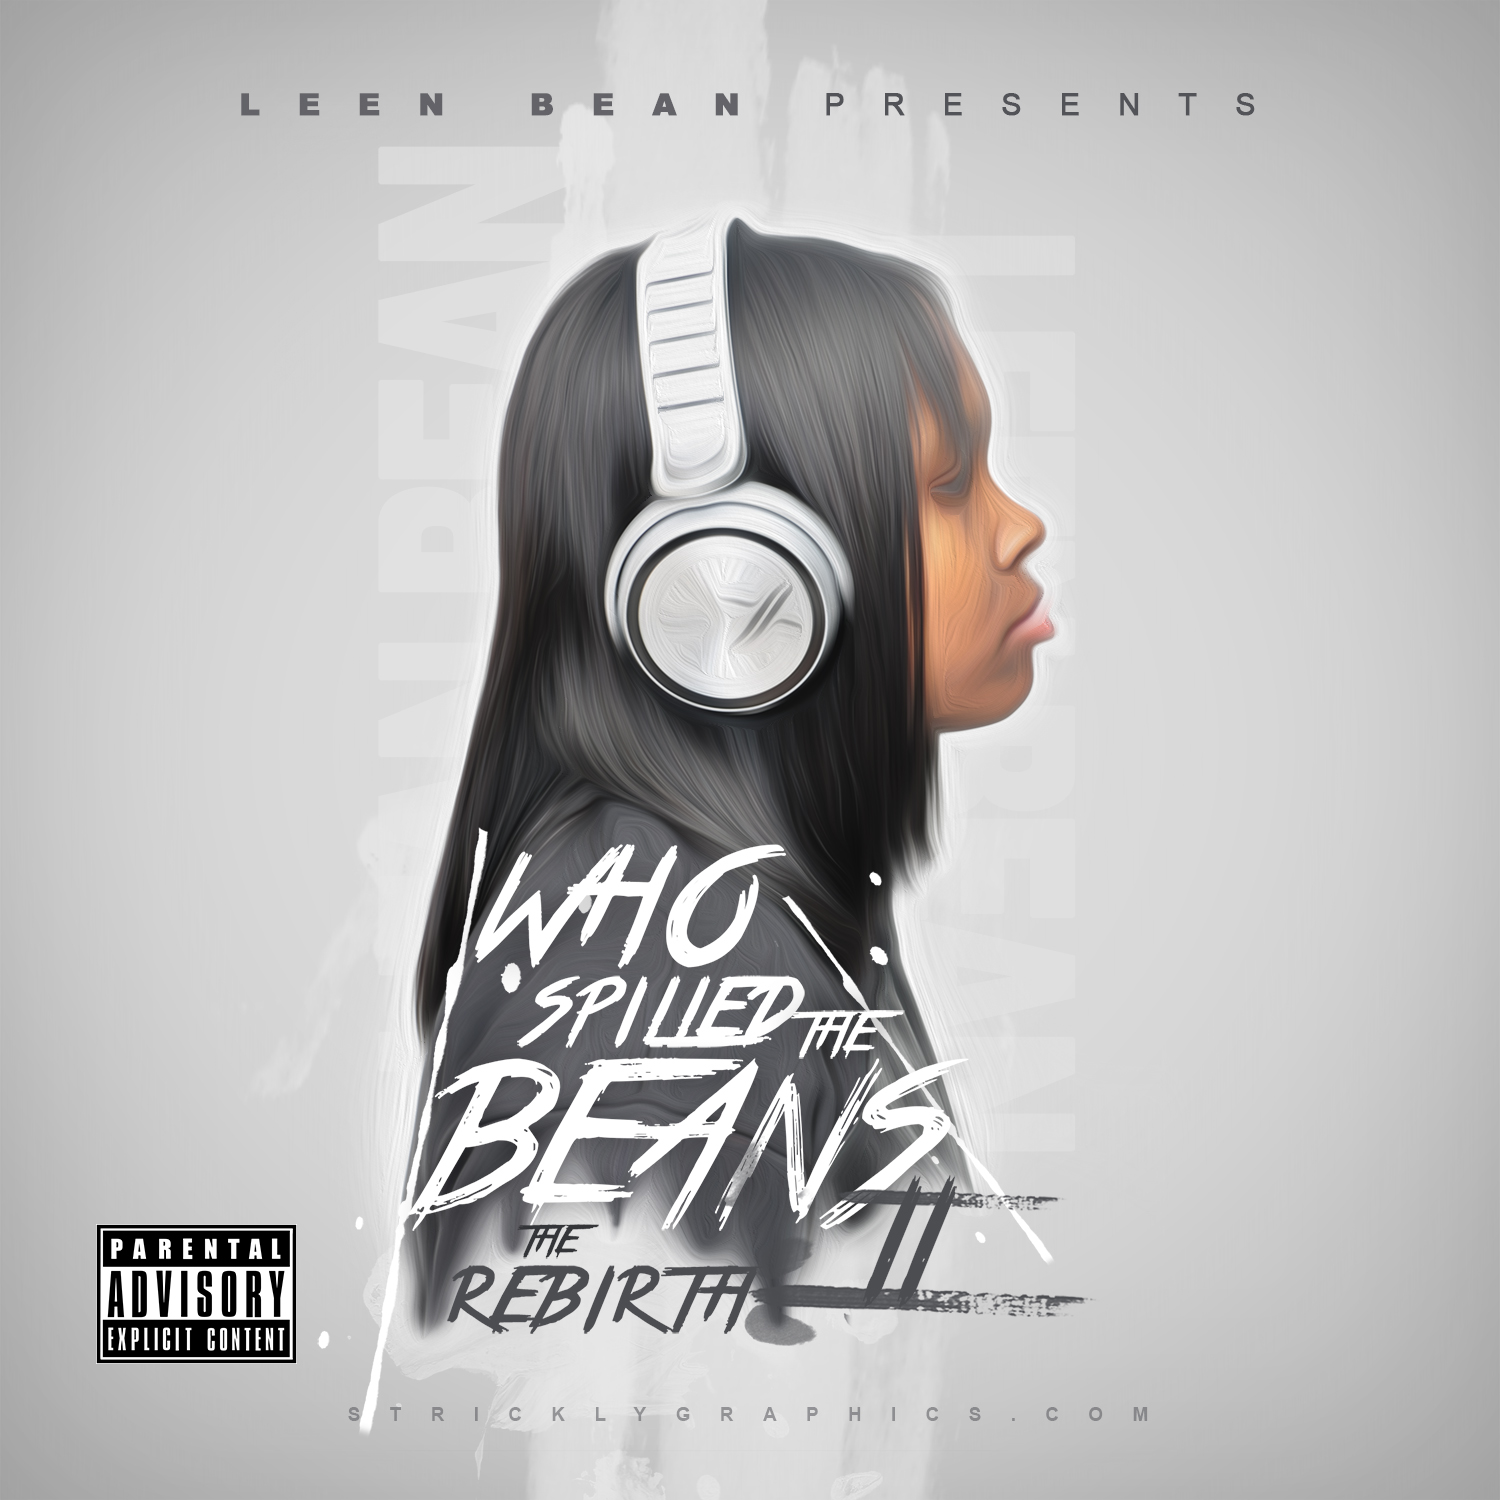 leen bean spilled beans 2 mixtape HHS1987 2013 cover Leen Bean   Who Spilled The Beans 2 (Mixtape)